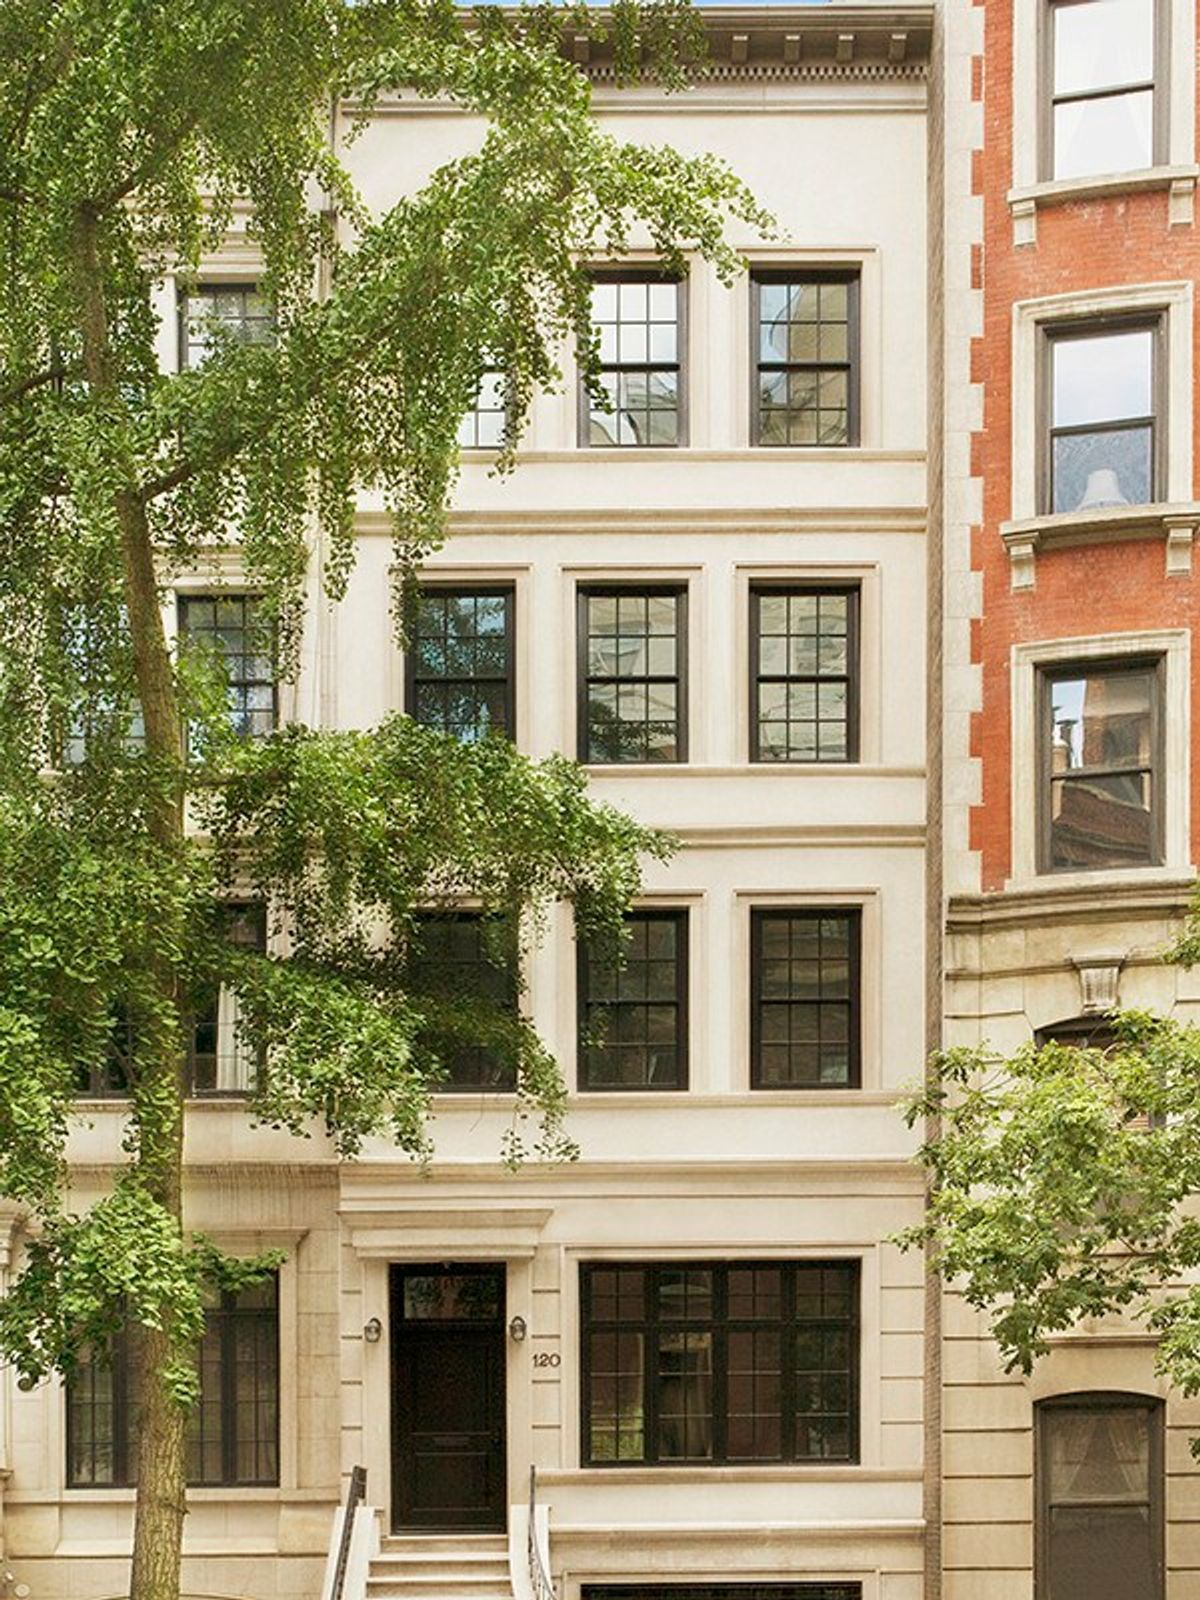 120 East 71st Street, New York NY Townhouse - New York City Real Estate